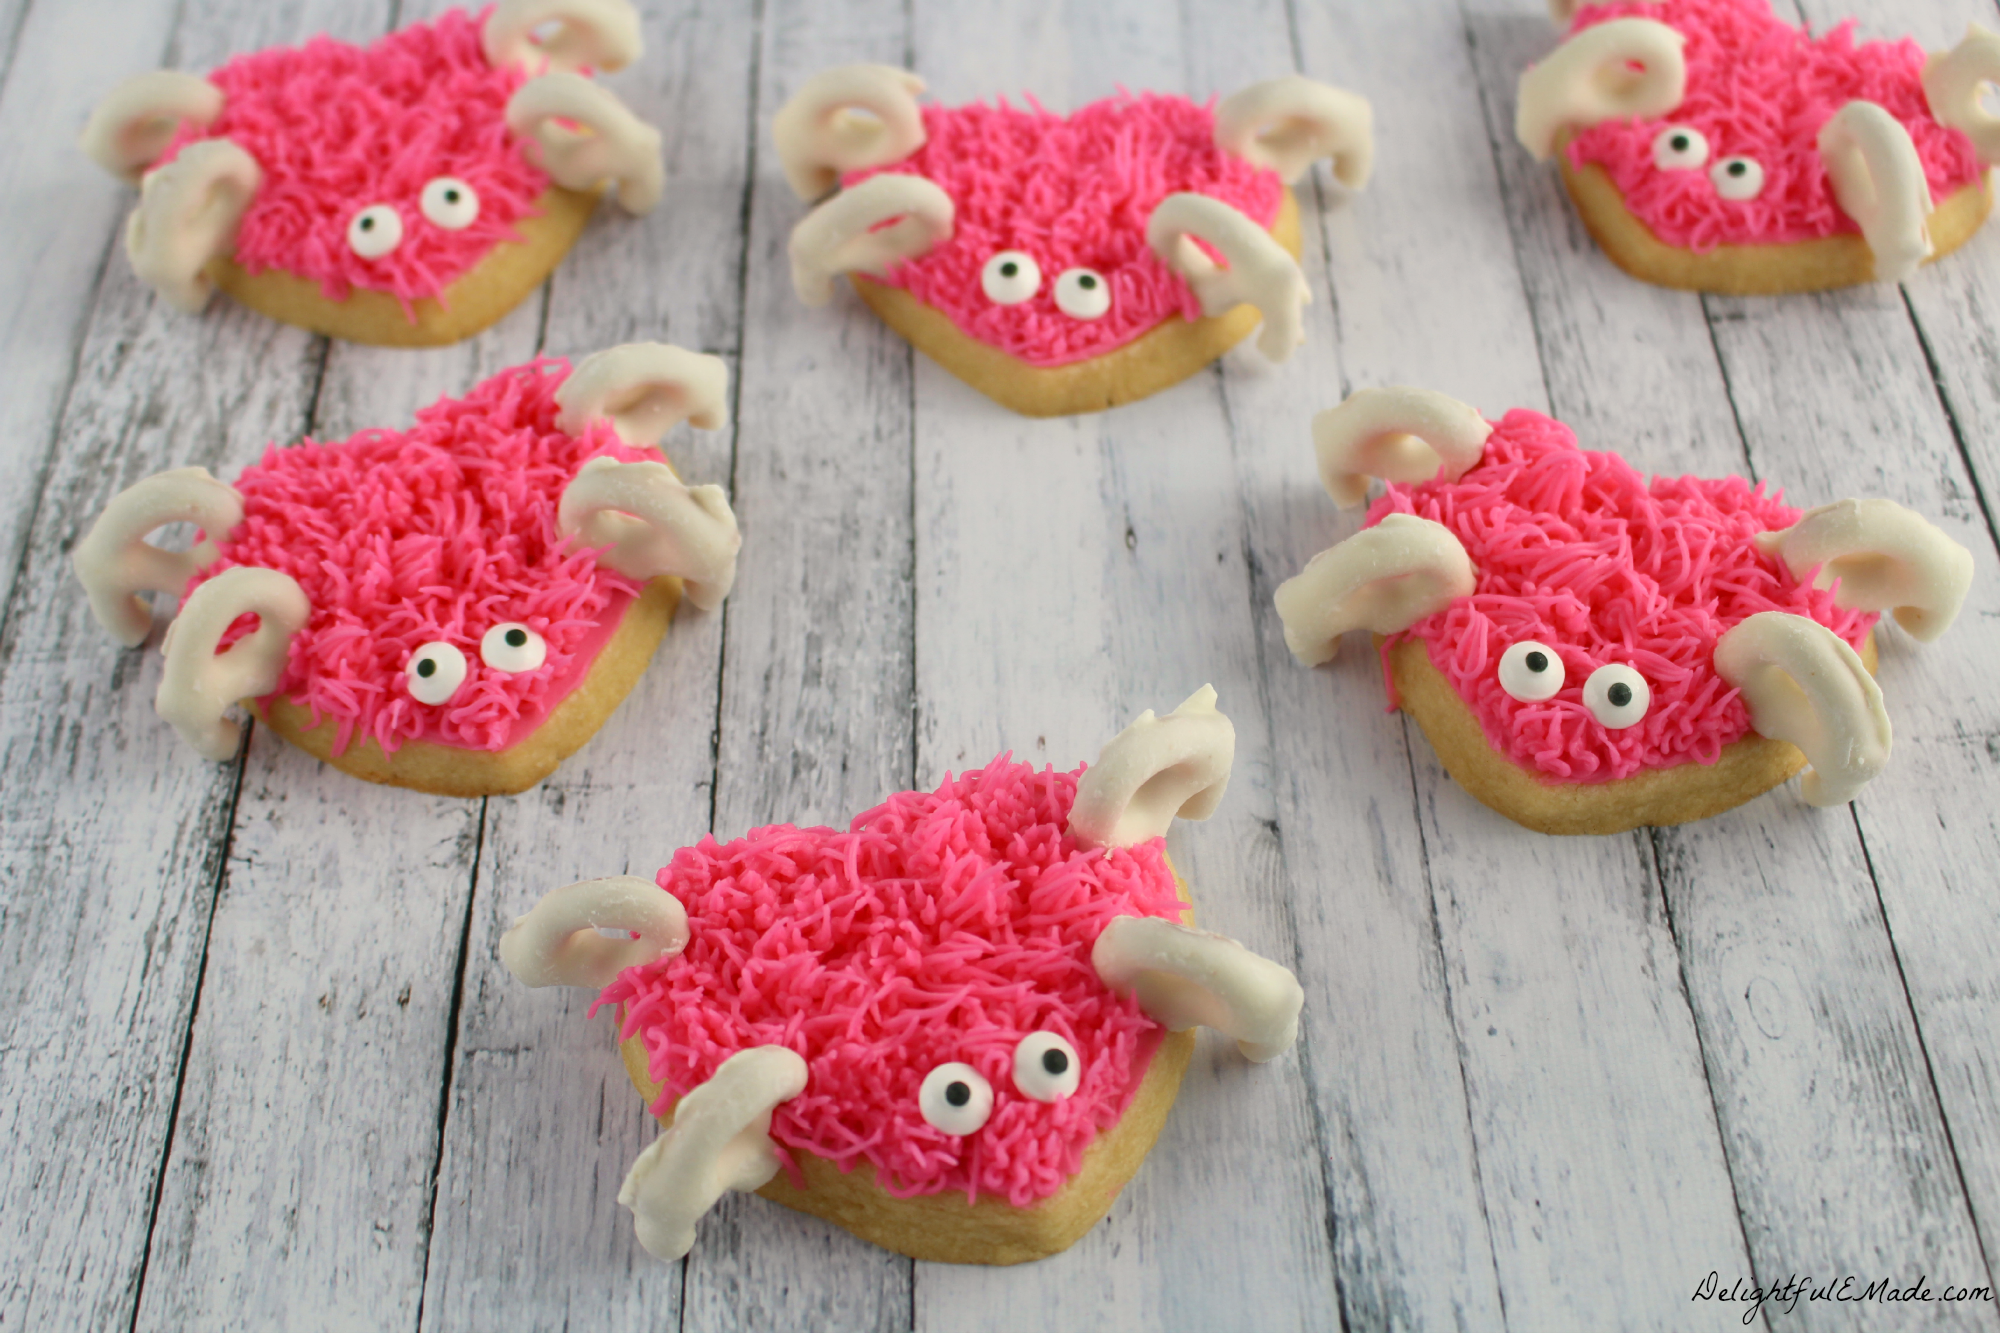 These Adorable Heart Shaped Sugar Cookies Are Frosted With Pink Icing And  Decorated With Yogurt Covered